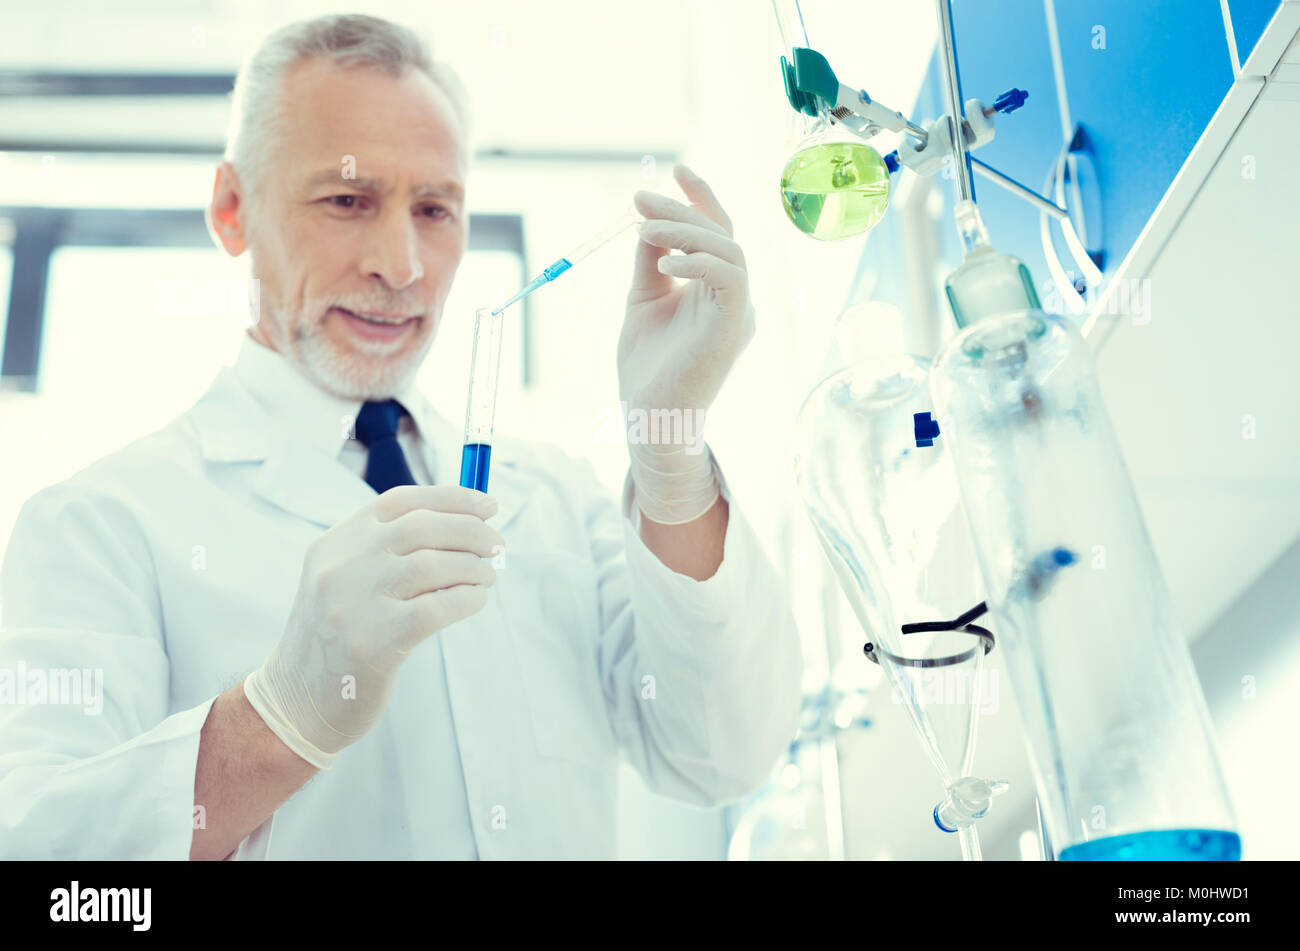 Positive minded scientist mixing chemical liquids in lab - Stock Image